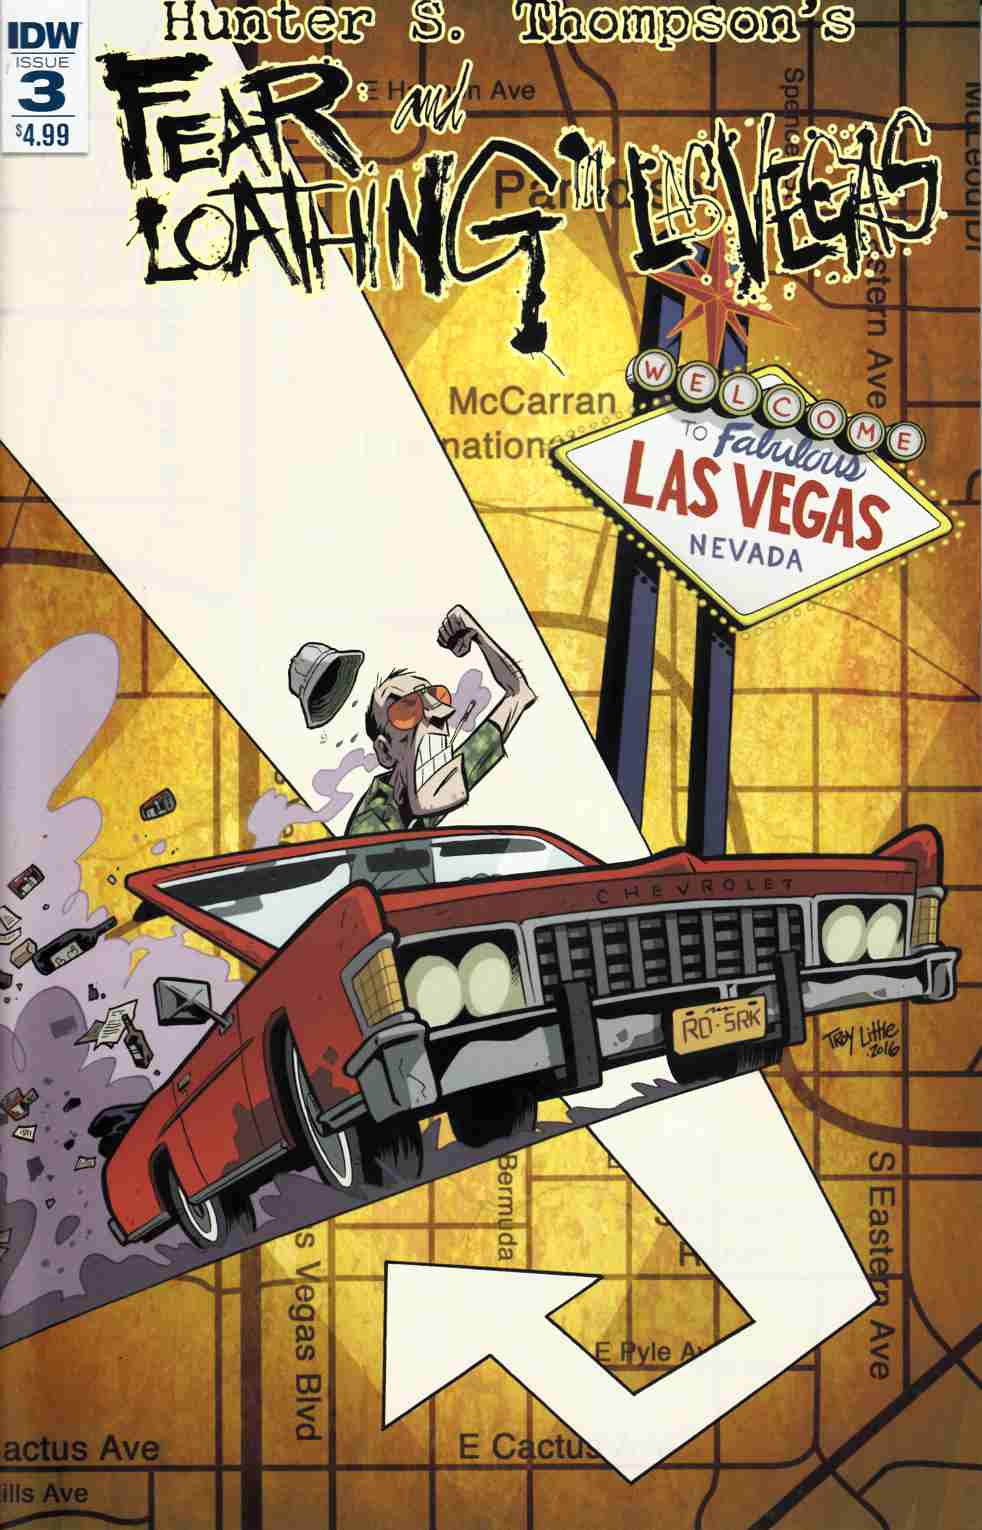 Fear & Loathing in Las Vegas #3 [IDW Comic]